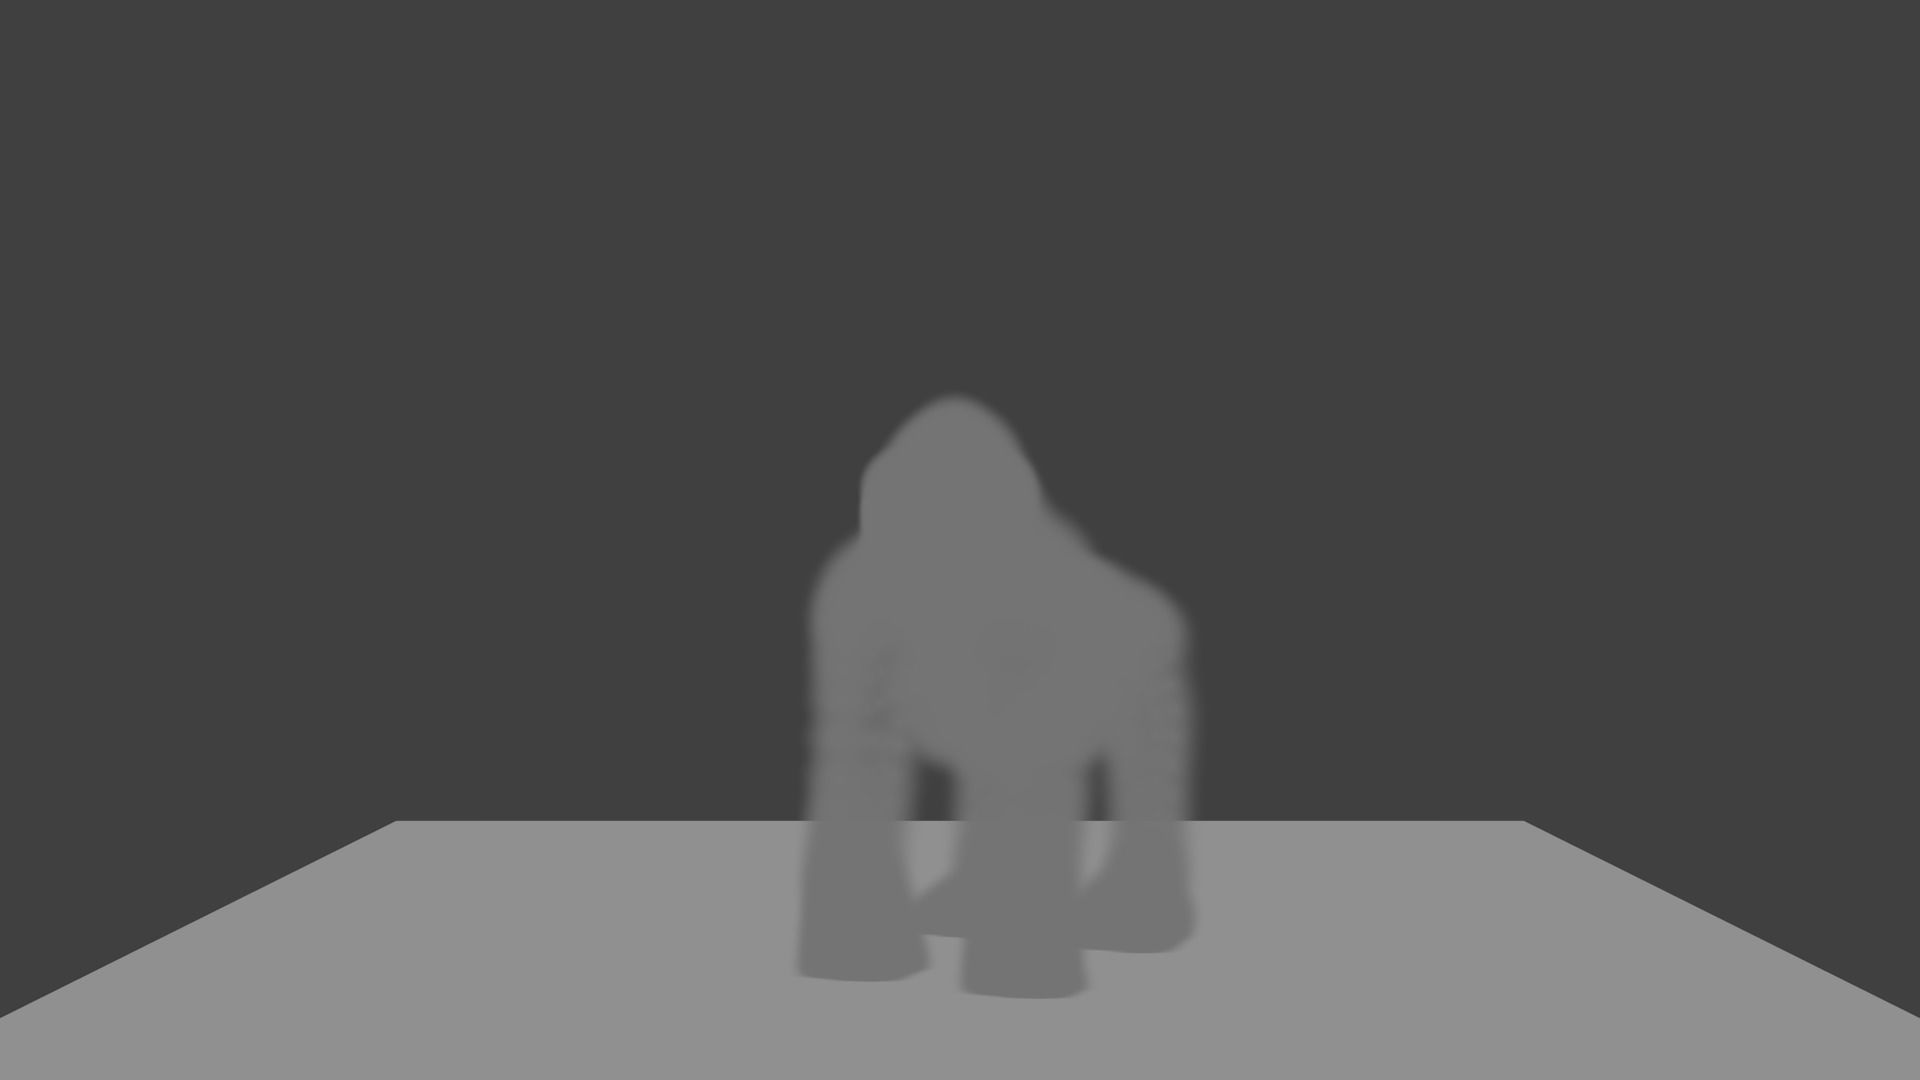 GORILLA MADE IN BLENDER | 3D model